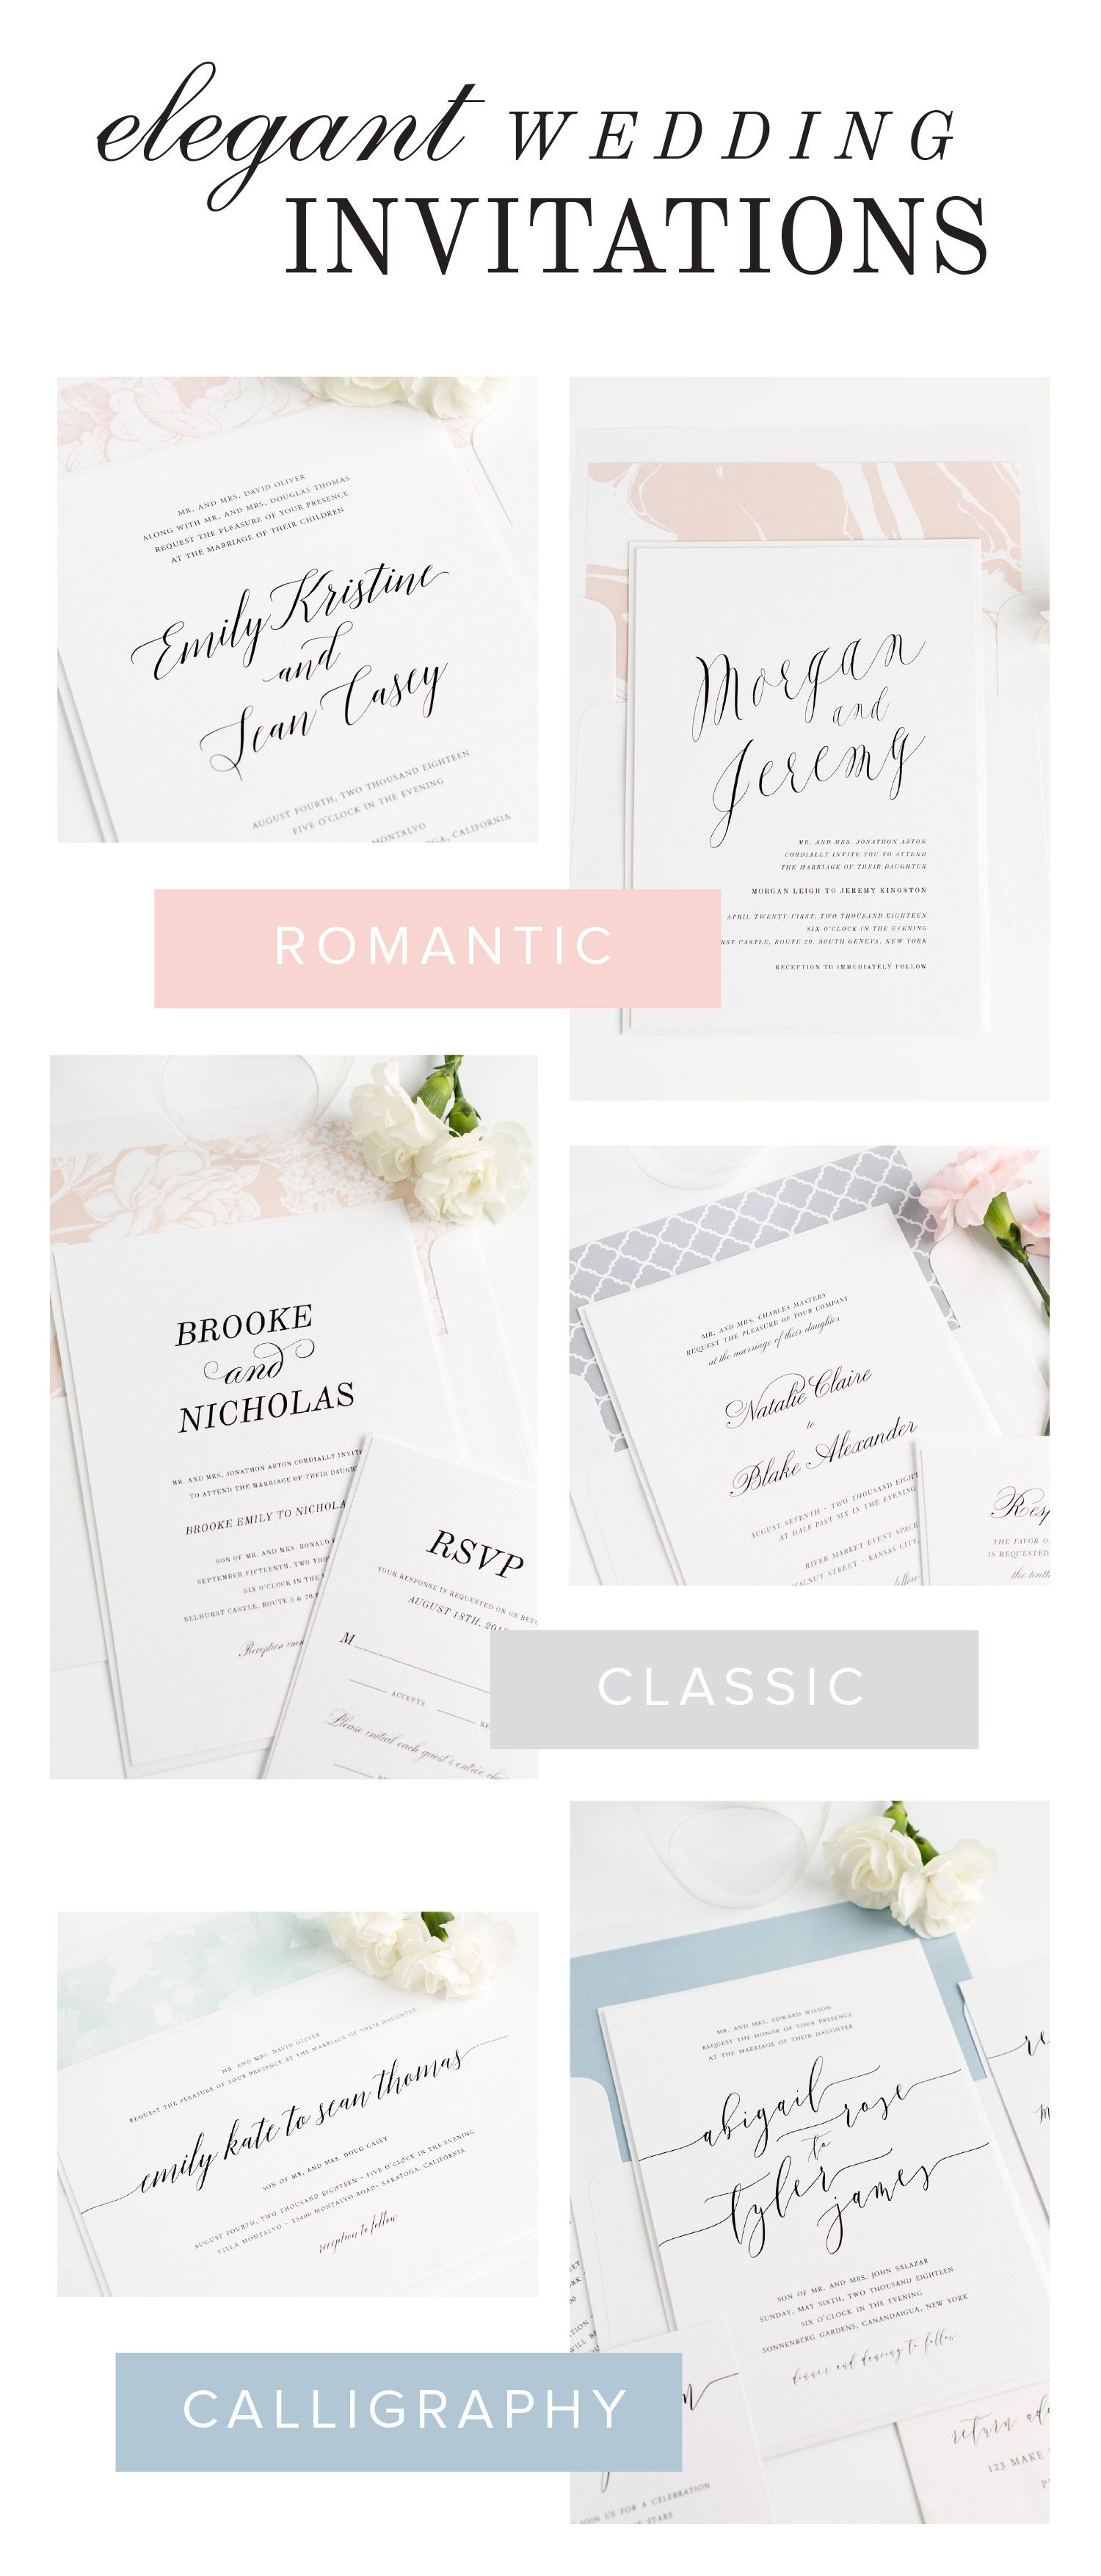 Need wedding invitations? Click to shop over 100 gorgeous designs ...